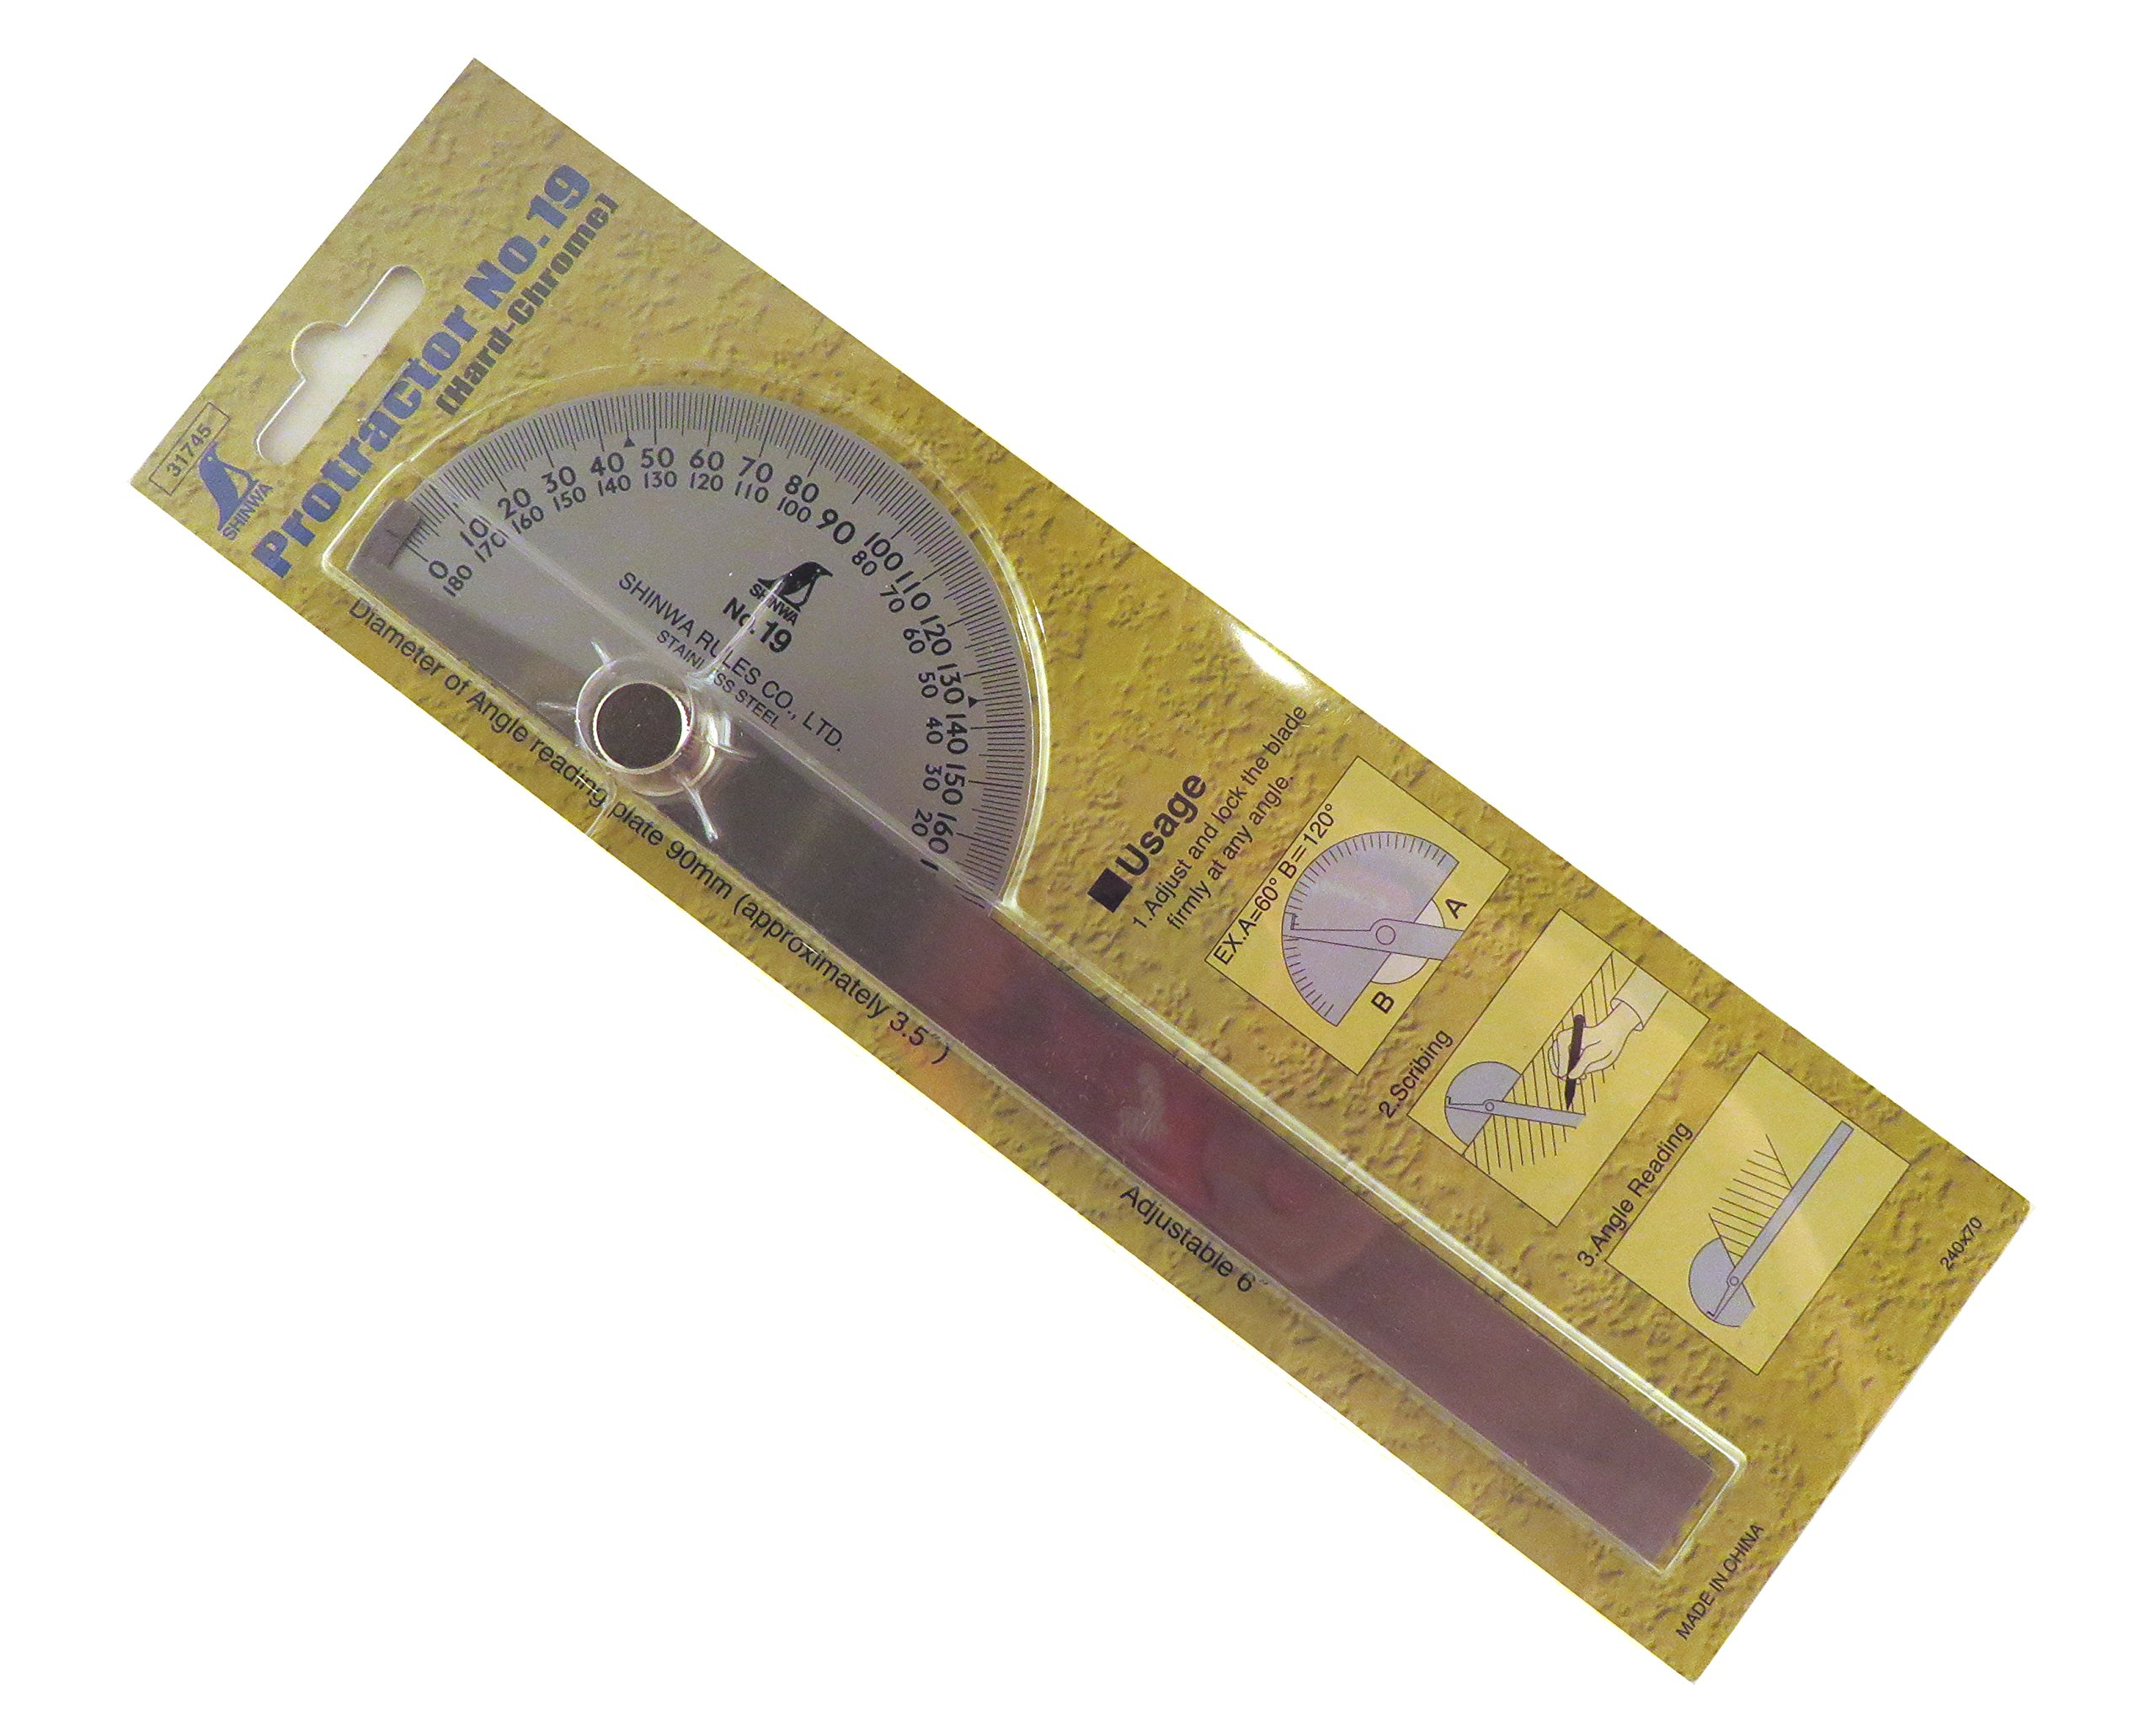 Shinwa Japanese #19 Stainless Steel Protractor 0-180 degrees with Round Head by Shinwa (Image #3)